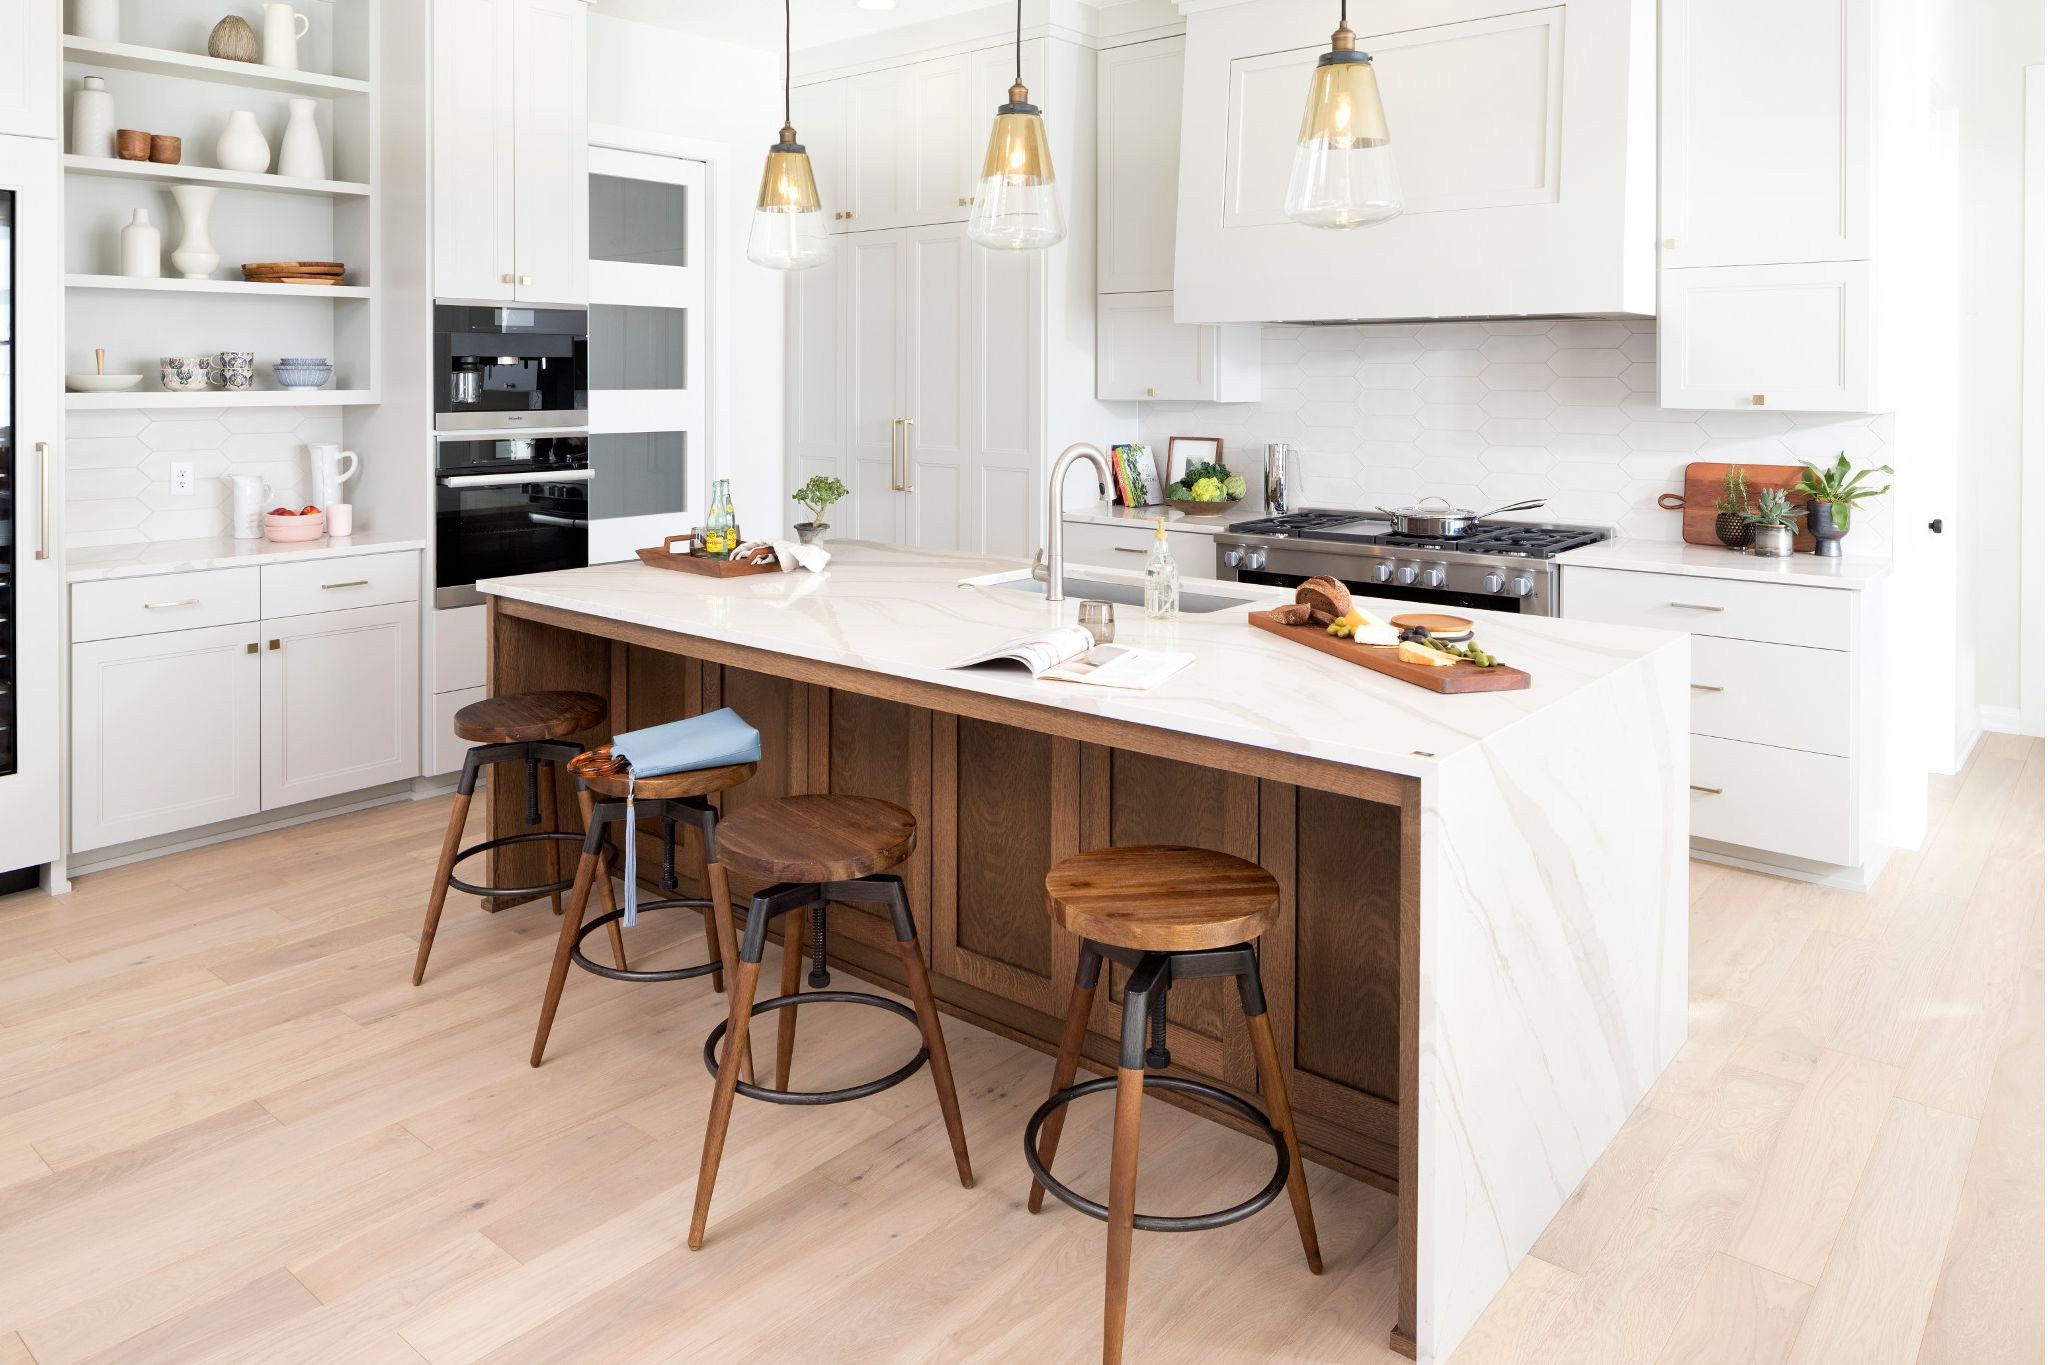 cambria-brittanicca-quartz-countertops-kitchen